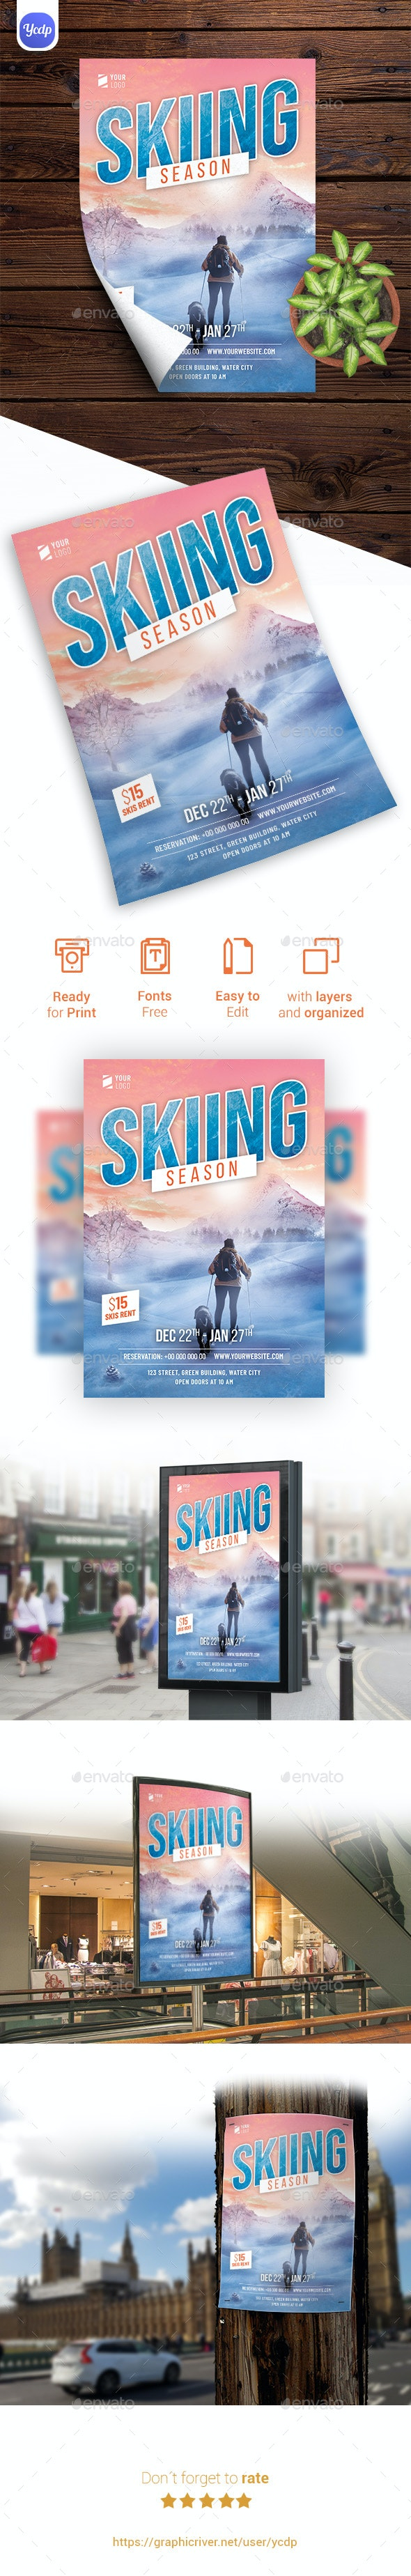 Skiing Season Flyer Template - Flyers Print Templates